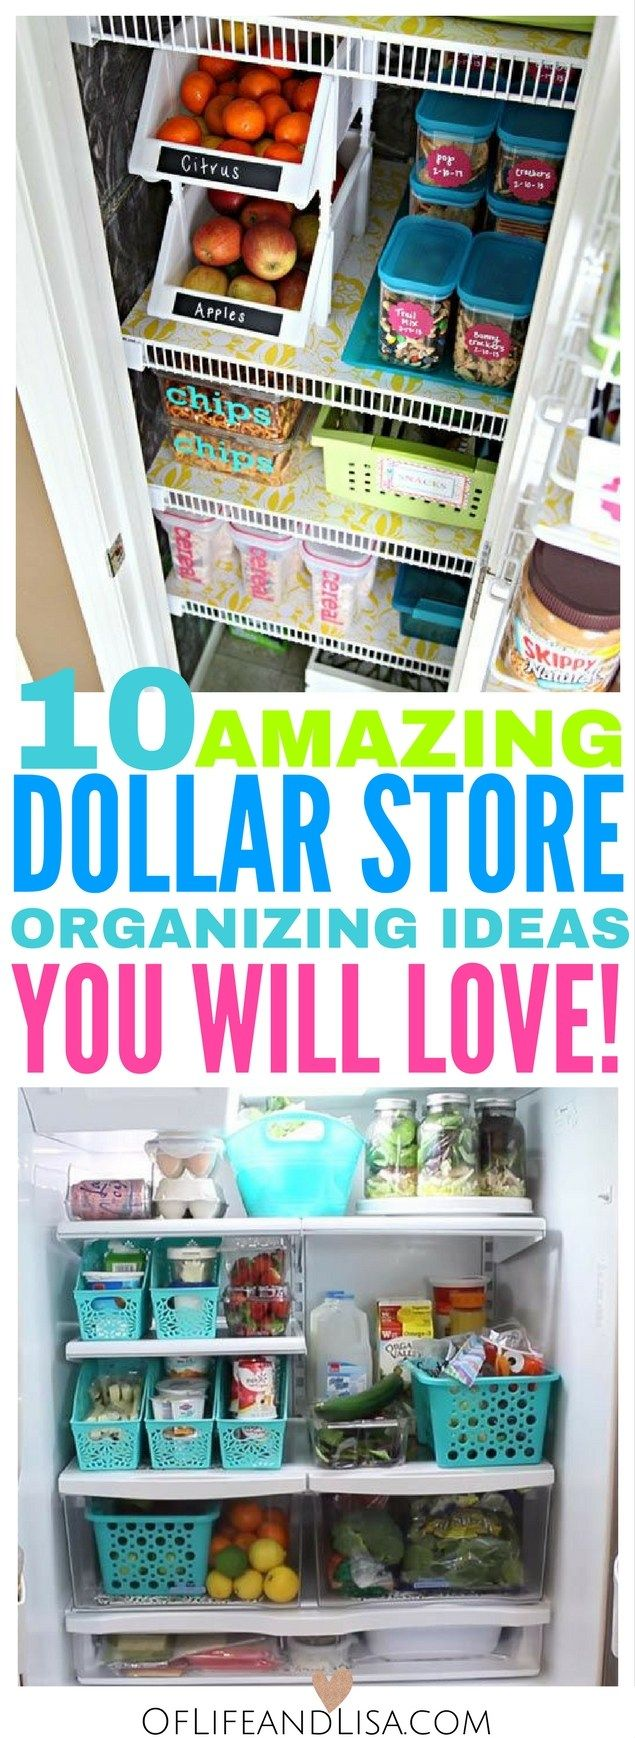 Check out this post to learn how to use cheap dollar store bins and baskets to organize your home on a dime!